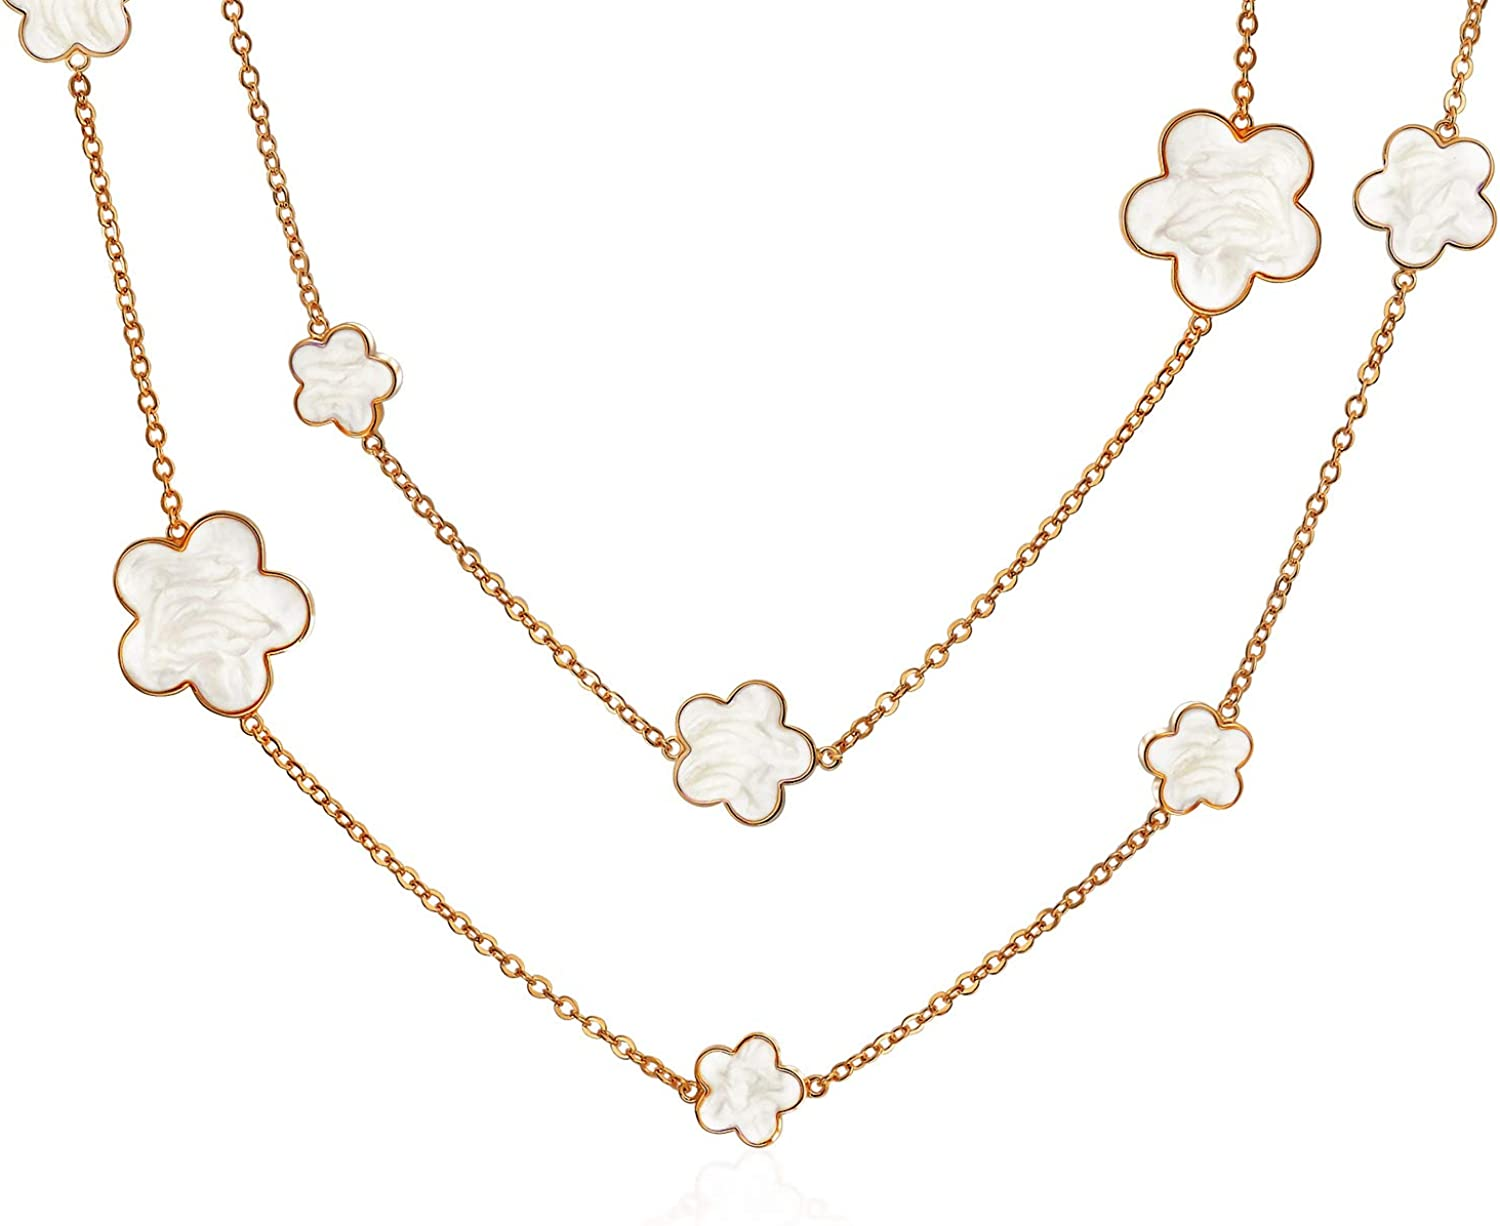 Fashion White Black Enamel Large Flower Long Gold Plated Station Chain Wrap Layer Clover Necklace for Women 40 Inch